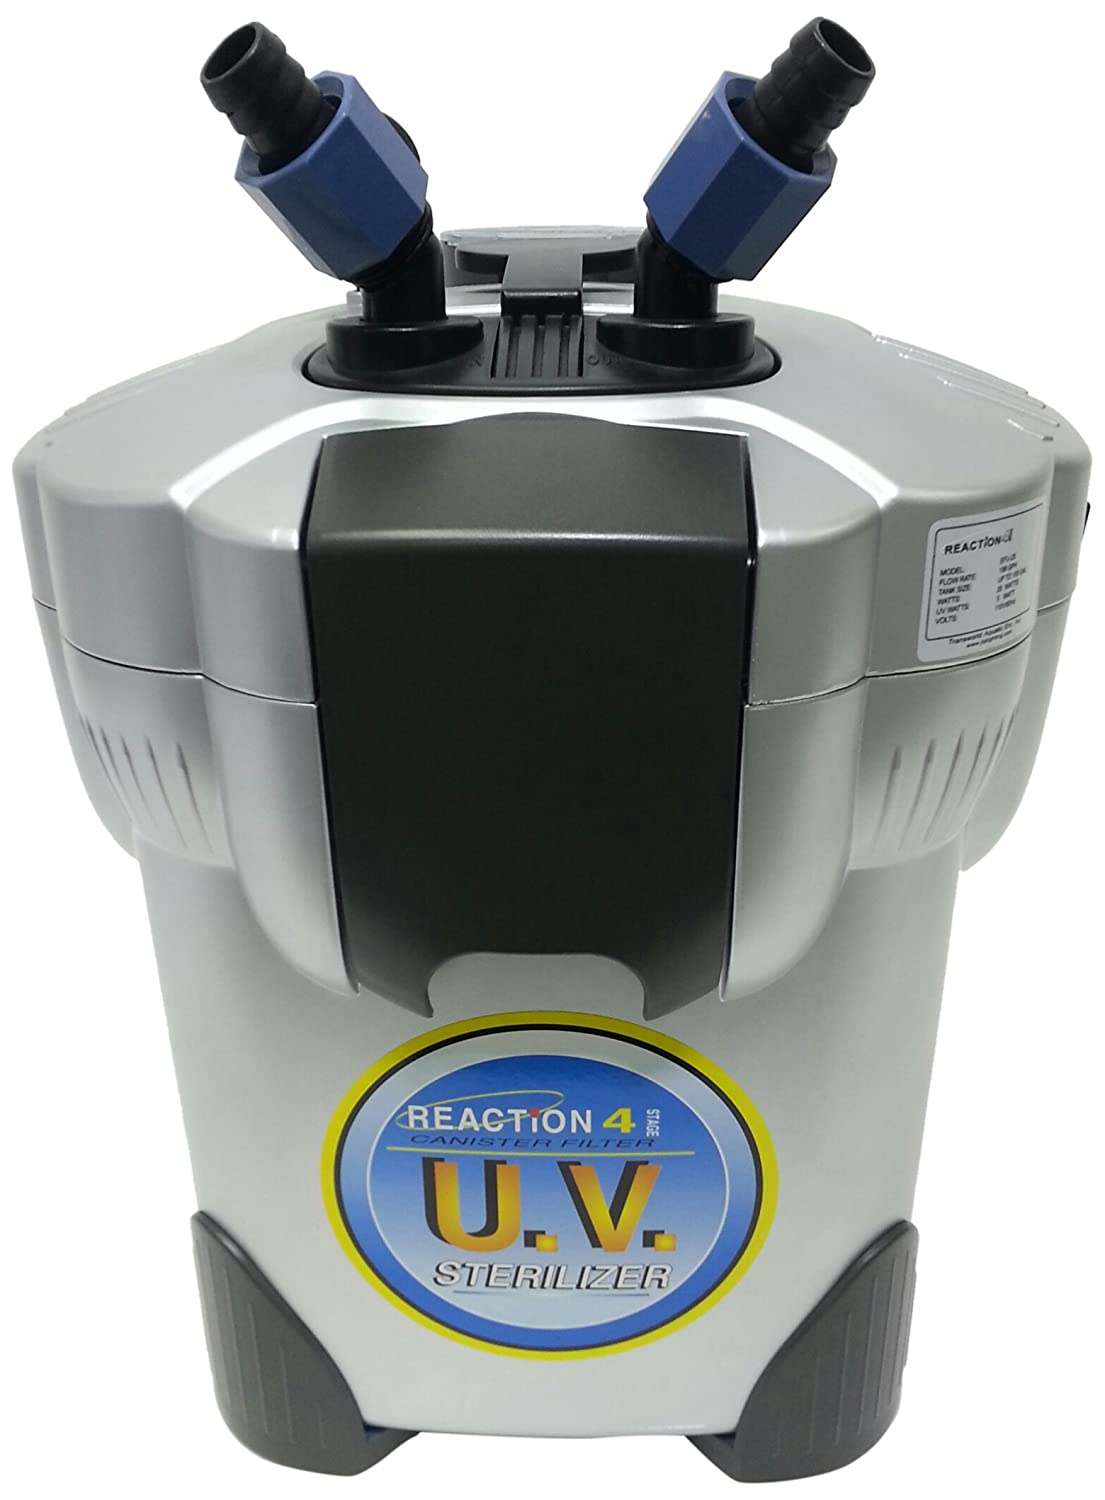 Filters Up to 100-Gallon JBJ 4-Stage Reaction Canister Filter with UV Sterilizer for Aquarium, Filters Up to 100-Gallon